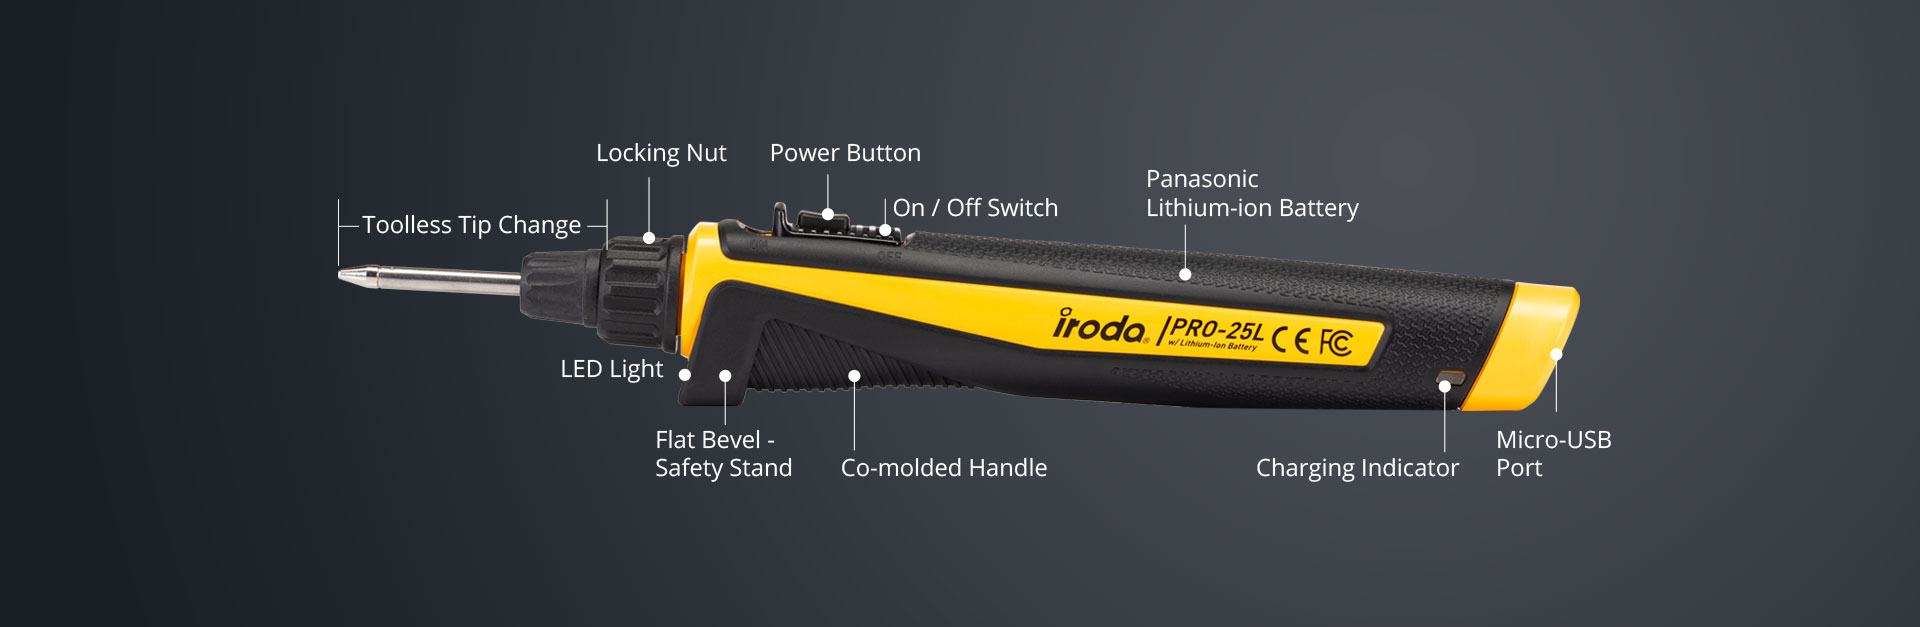 Horizontal Description of PRO-25L USB Battery Rechargeable Soldering Iron from Pro-Iroda